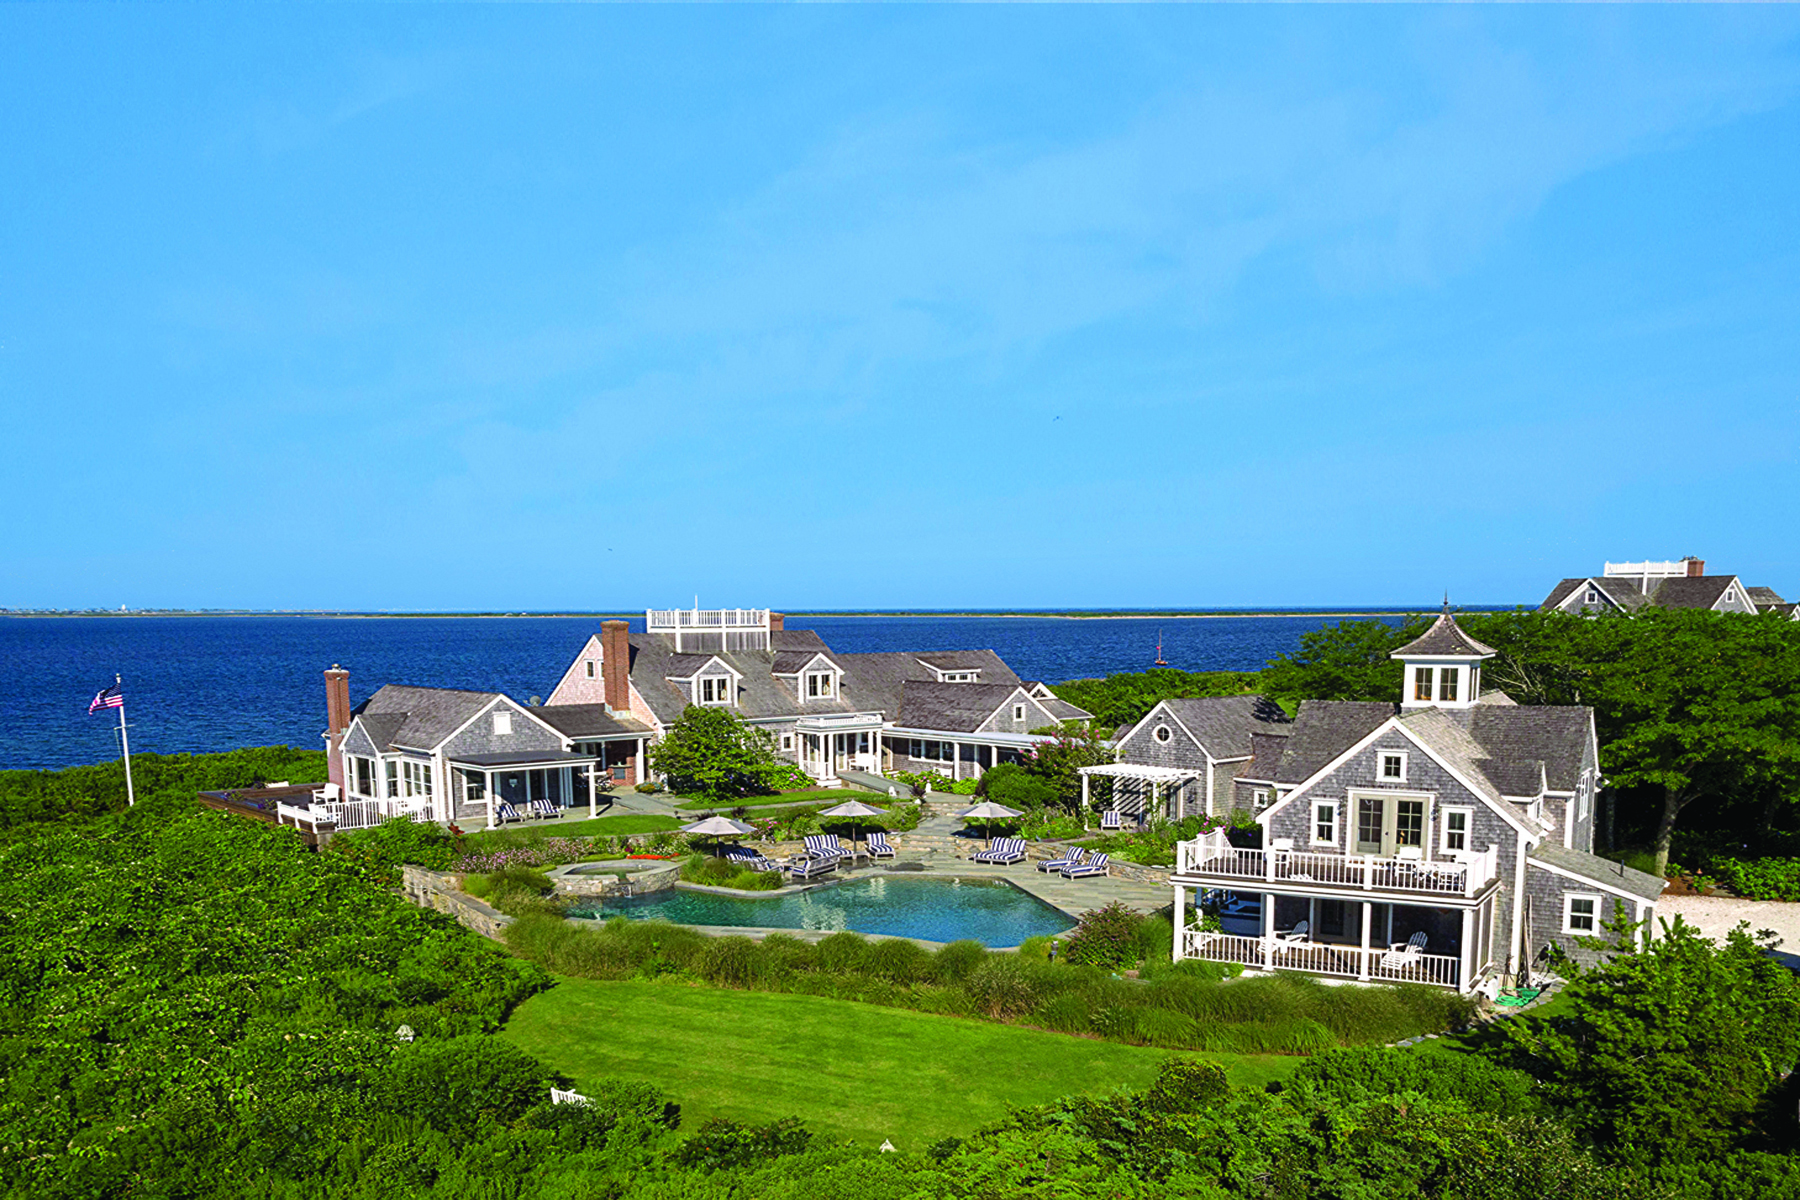 단독 가정 주택 용 매매 에 Entirely Unique Waterfront Estate 72 Pocomo Road 76 and 78 Pocomo Road Nantucket, 매사추세츠, 02554 미국